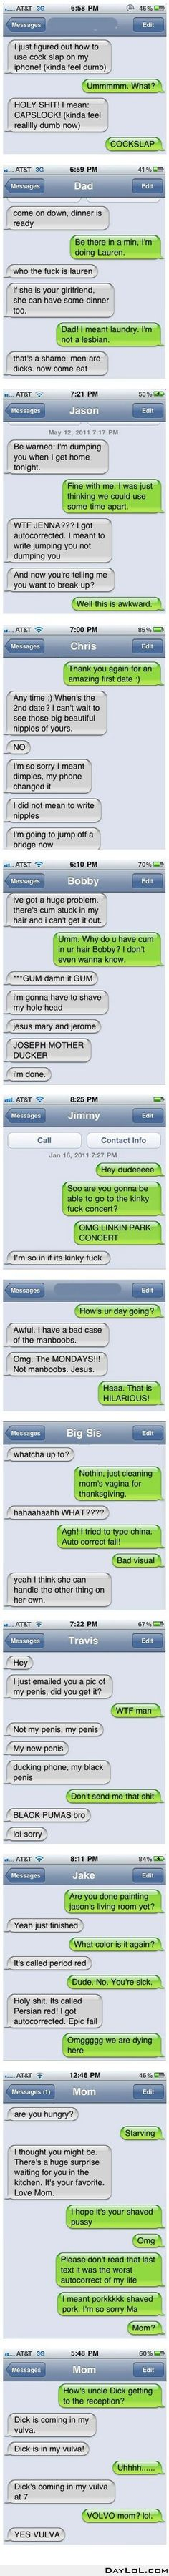 Funniest autocorrects ever www.bestfunnyjokes4u.com/